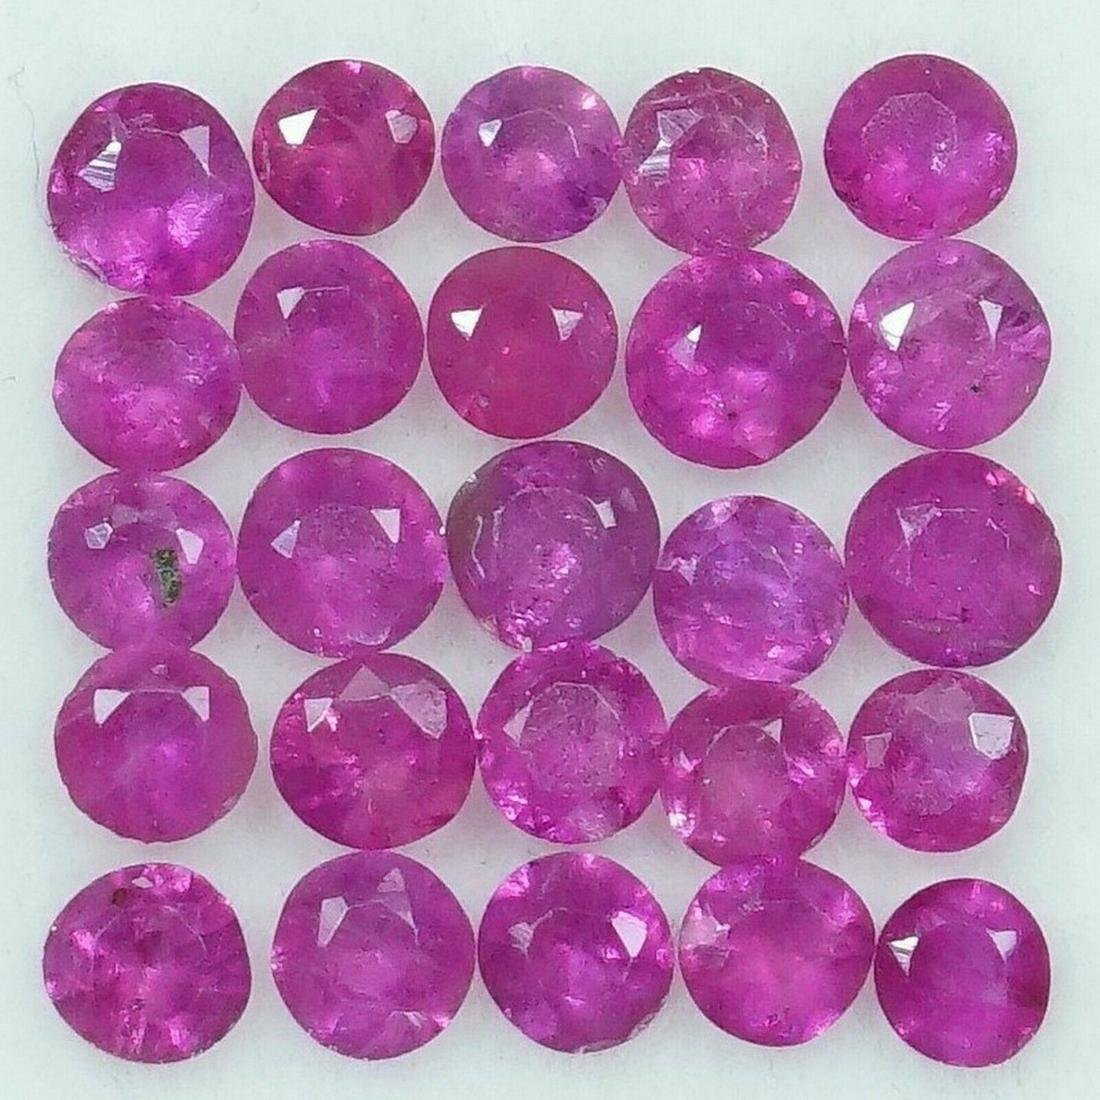 100% Natural Ruby 1.24 CTS Diamond Cut 2 mm Size Lot of